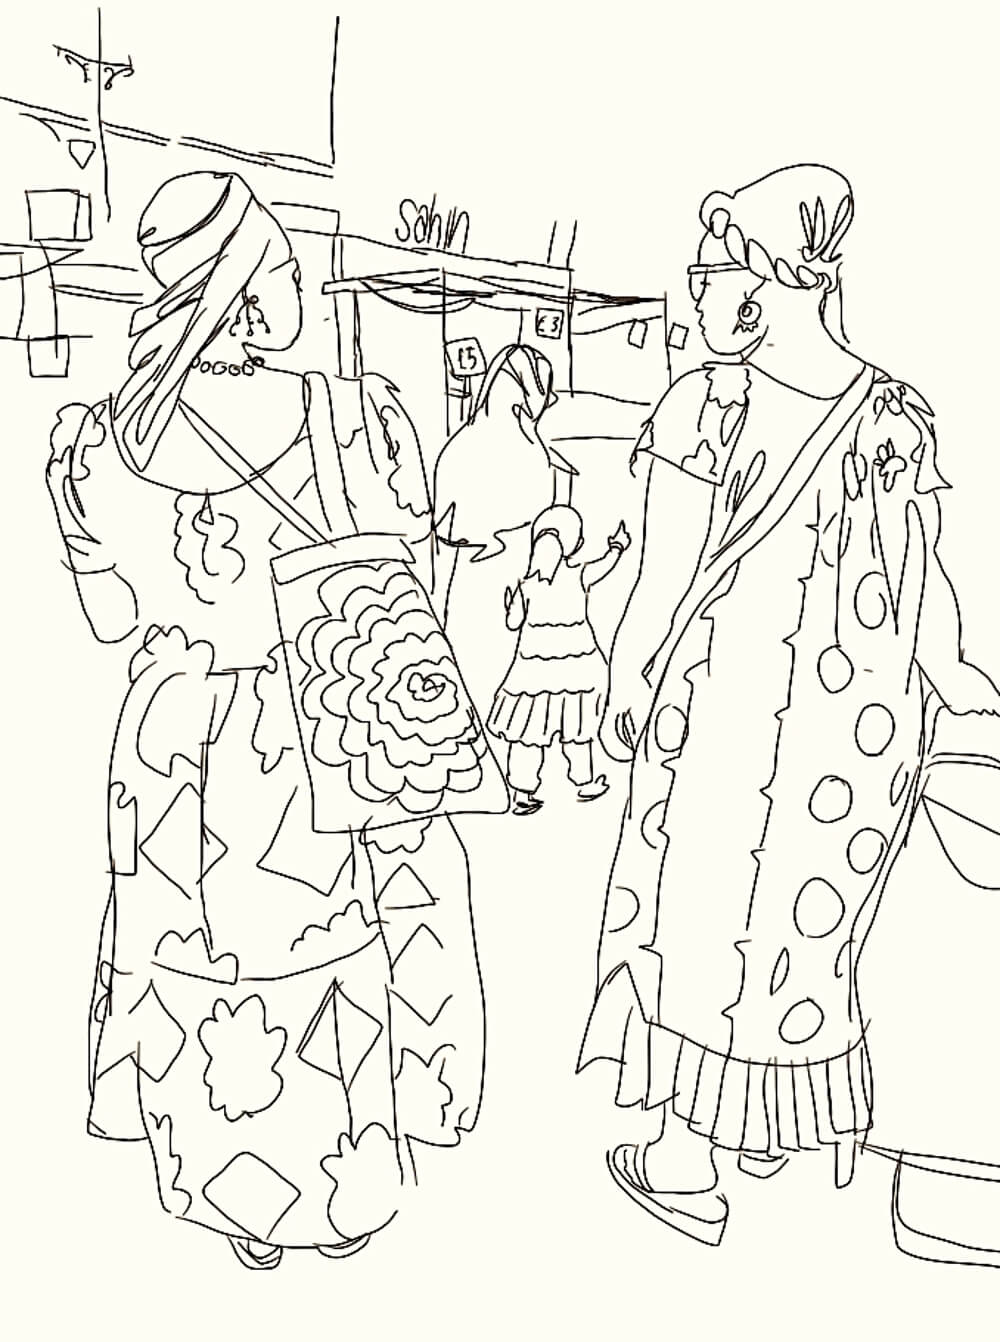 Drawing of two women on Roman Road by Bex Shaw